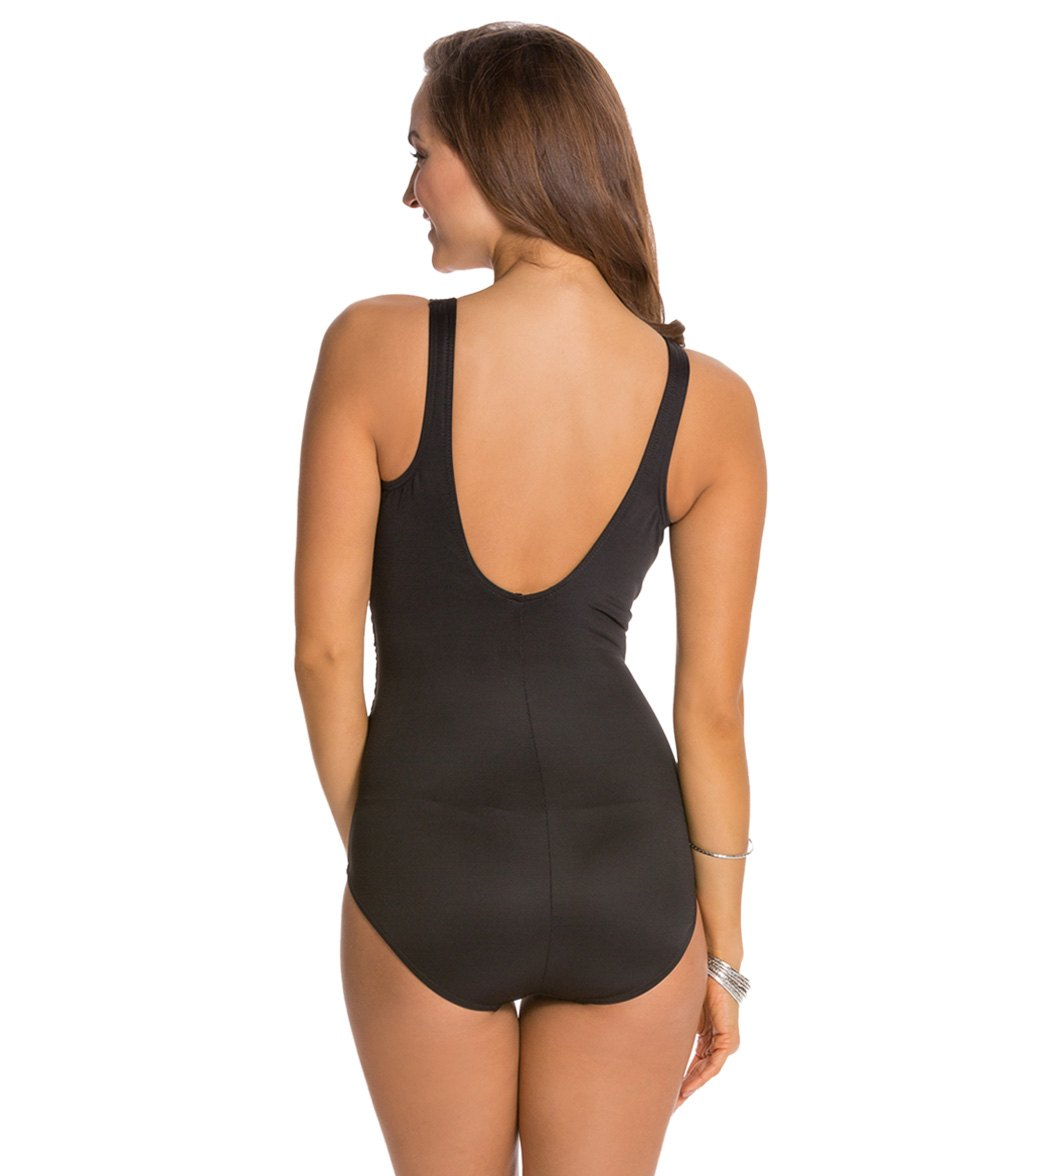 93aaf7f5cc318 Miraclesuit Solid Oceanus One Piece Swimsuit (DD Cup) at SwimOutlet ...